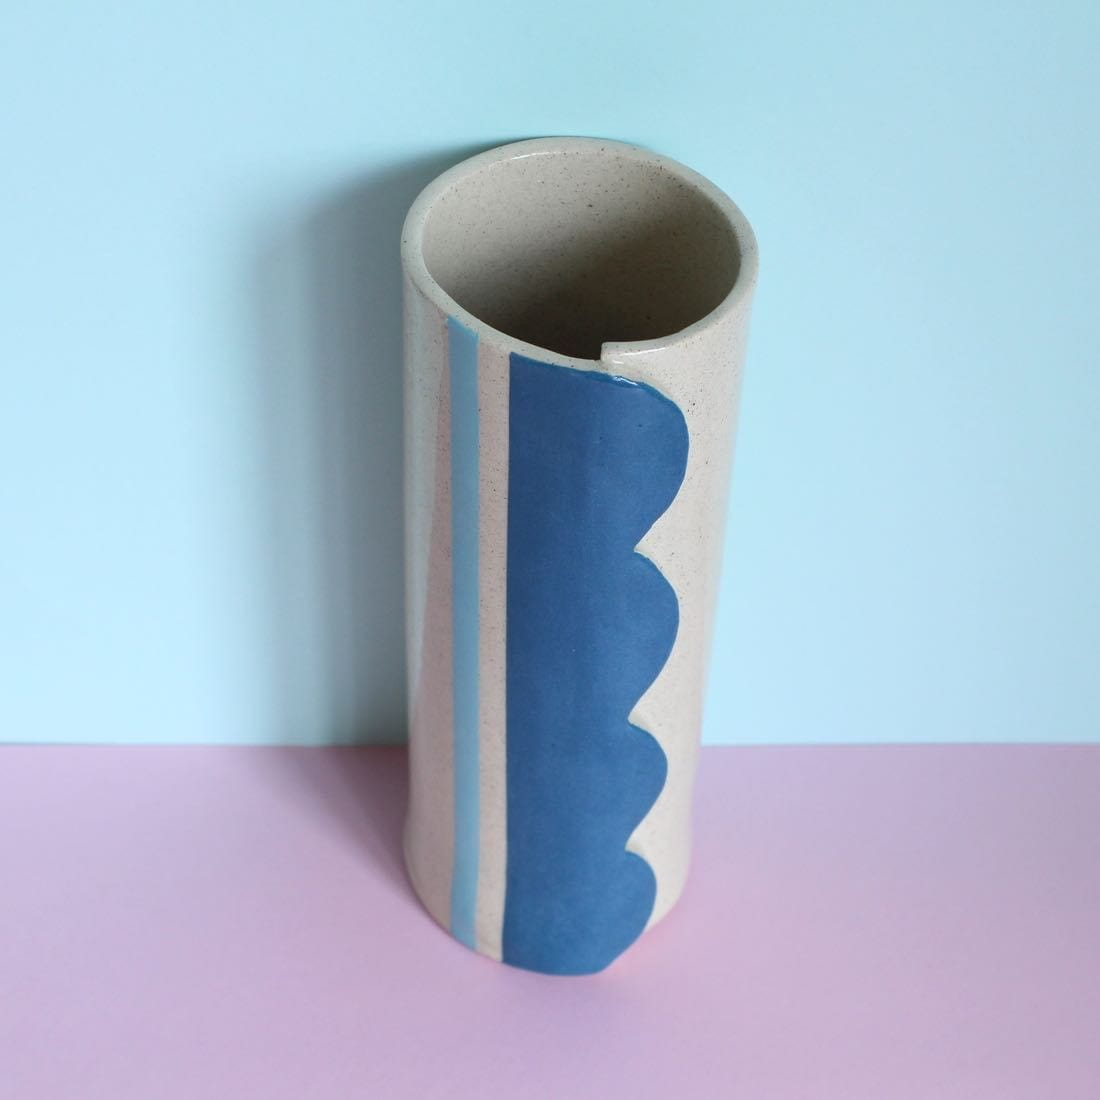 Scalloped Vessel - Ceramics